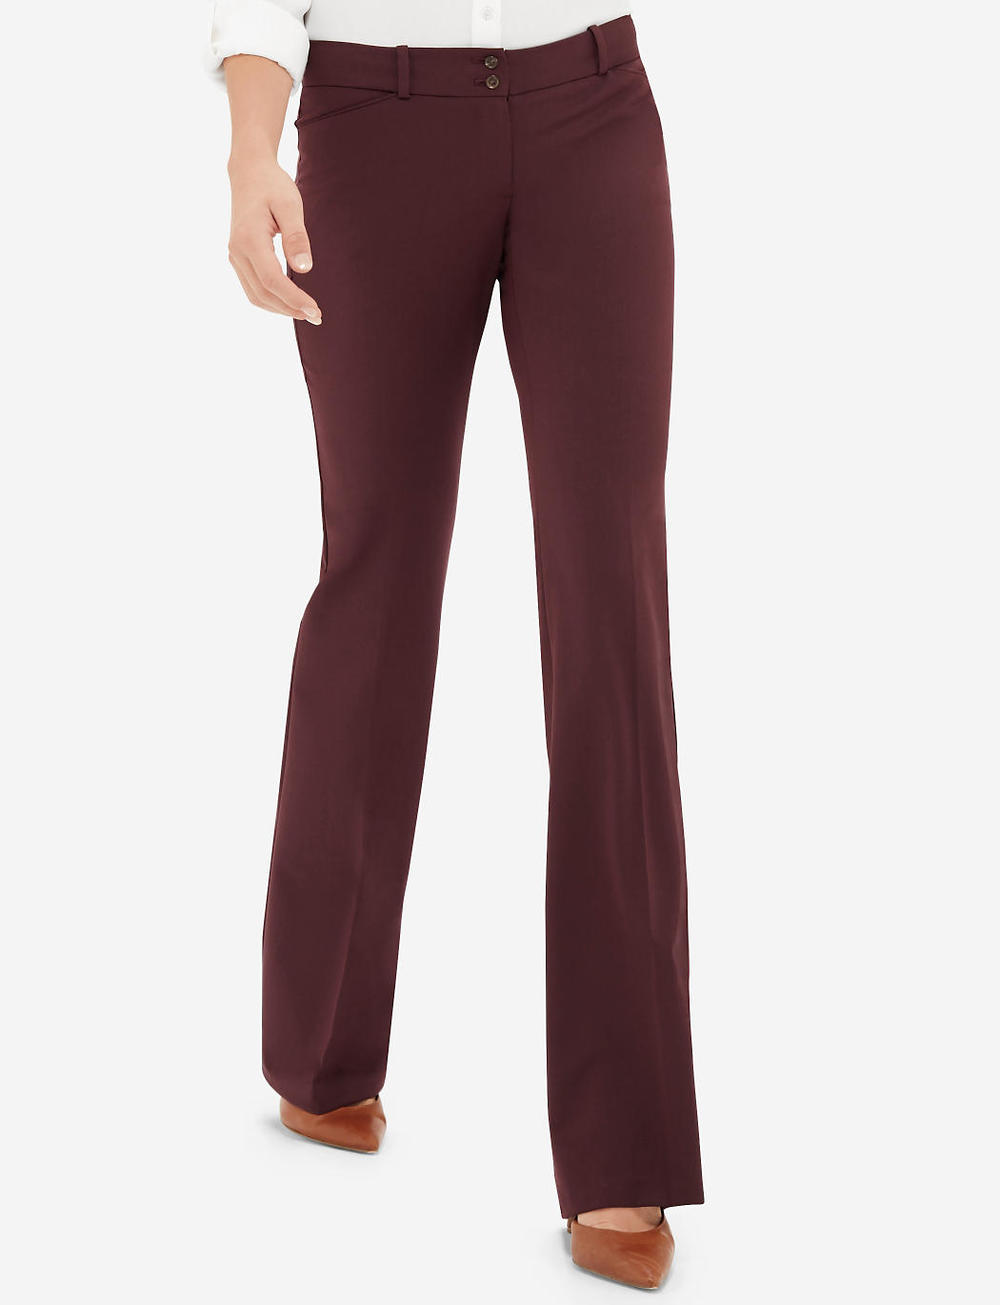 Tall Drew Classic Flare Pants. Available in multiple colors.The Limited. Was: $79 Now: $55.